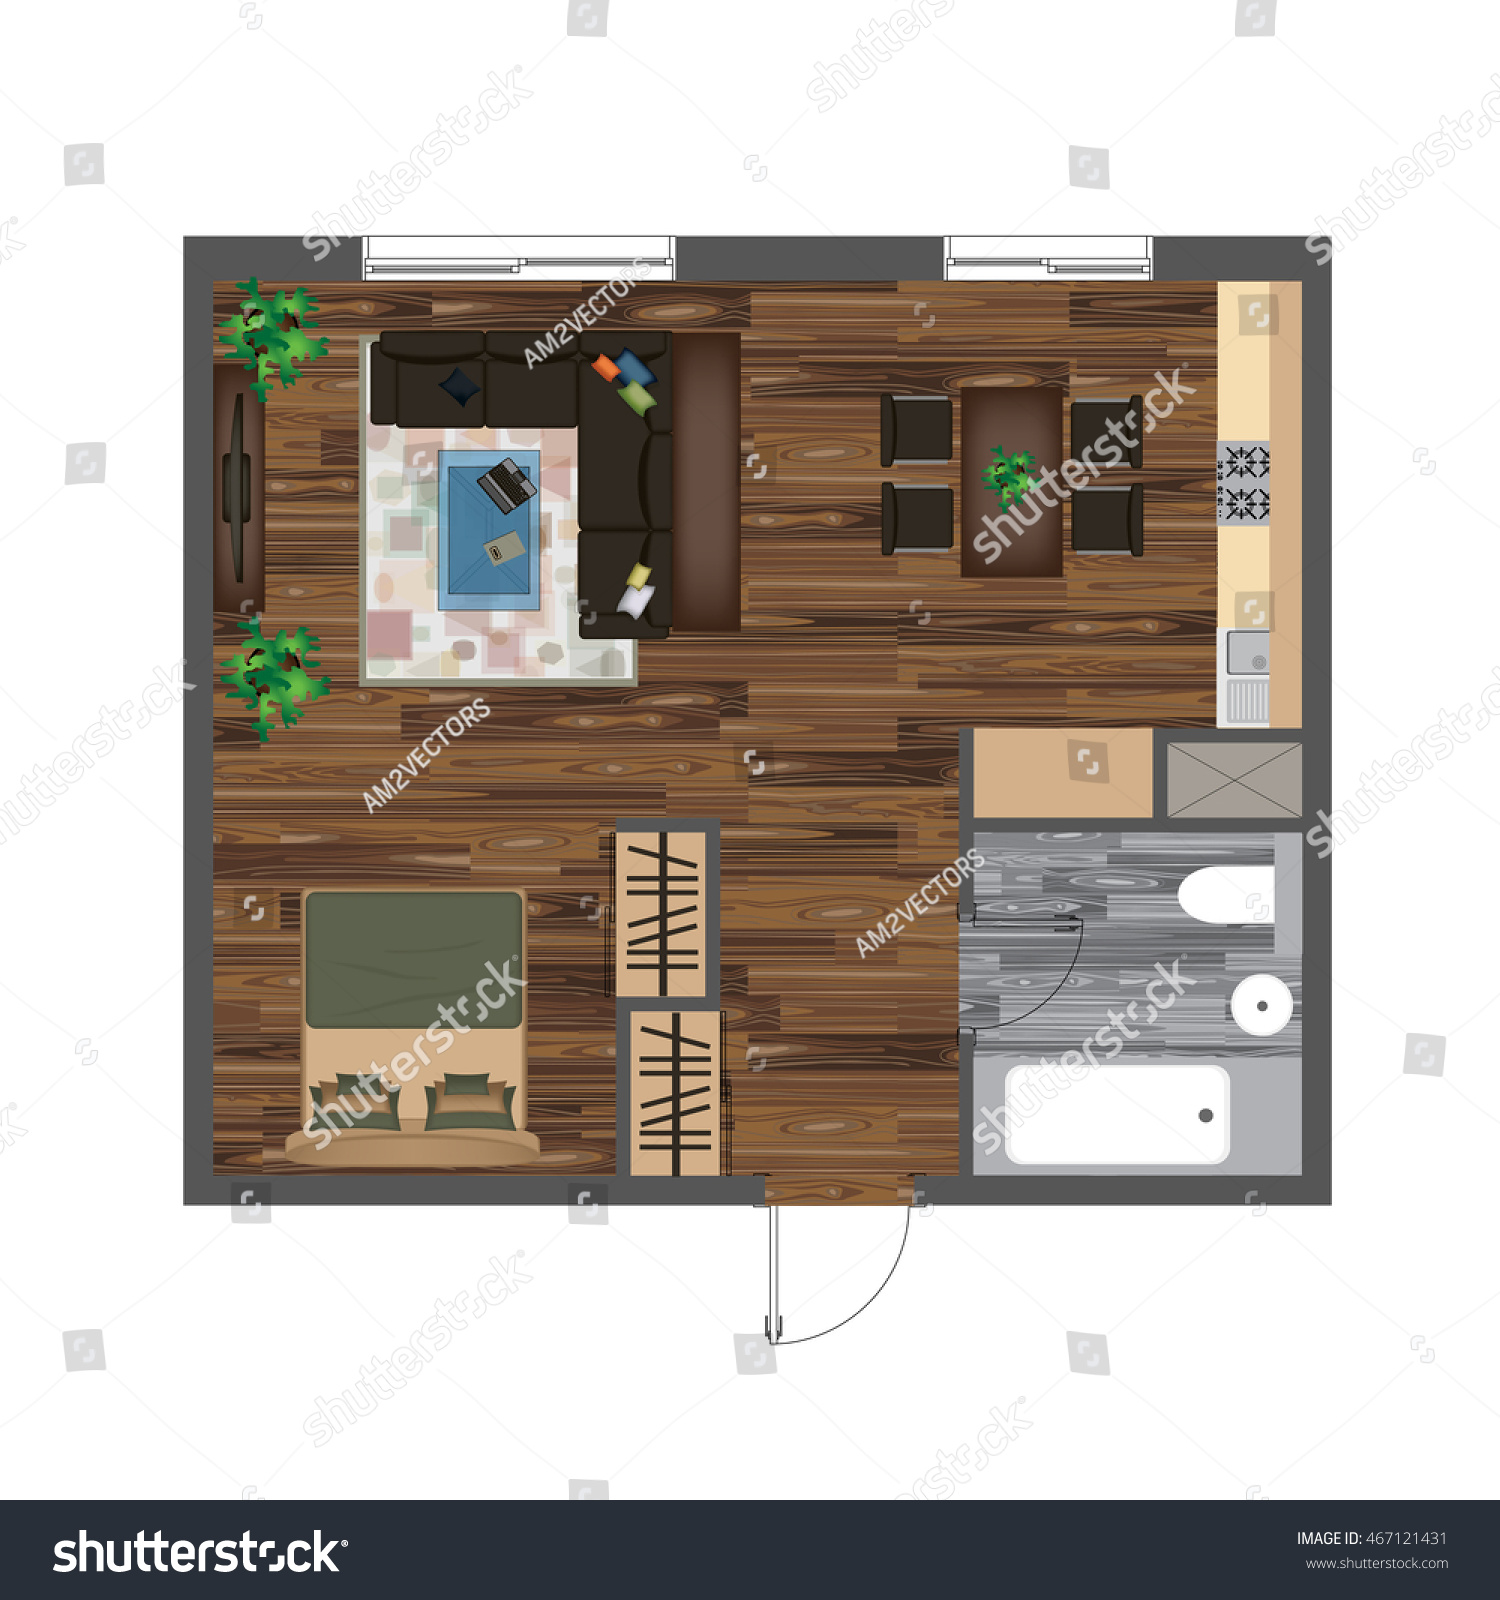 Architectural Color Floor Plan Studio Apartment Stock Vector Royalty Free 467121431